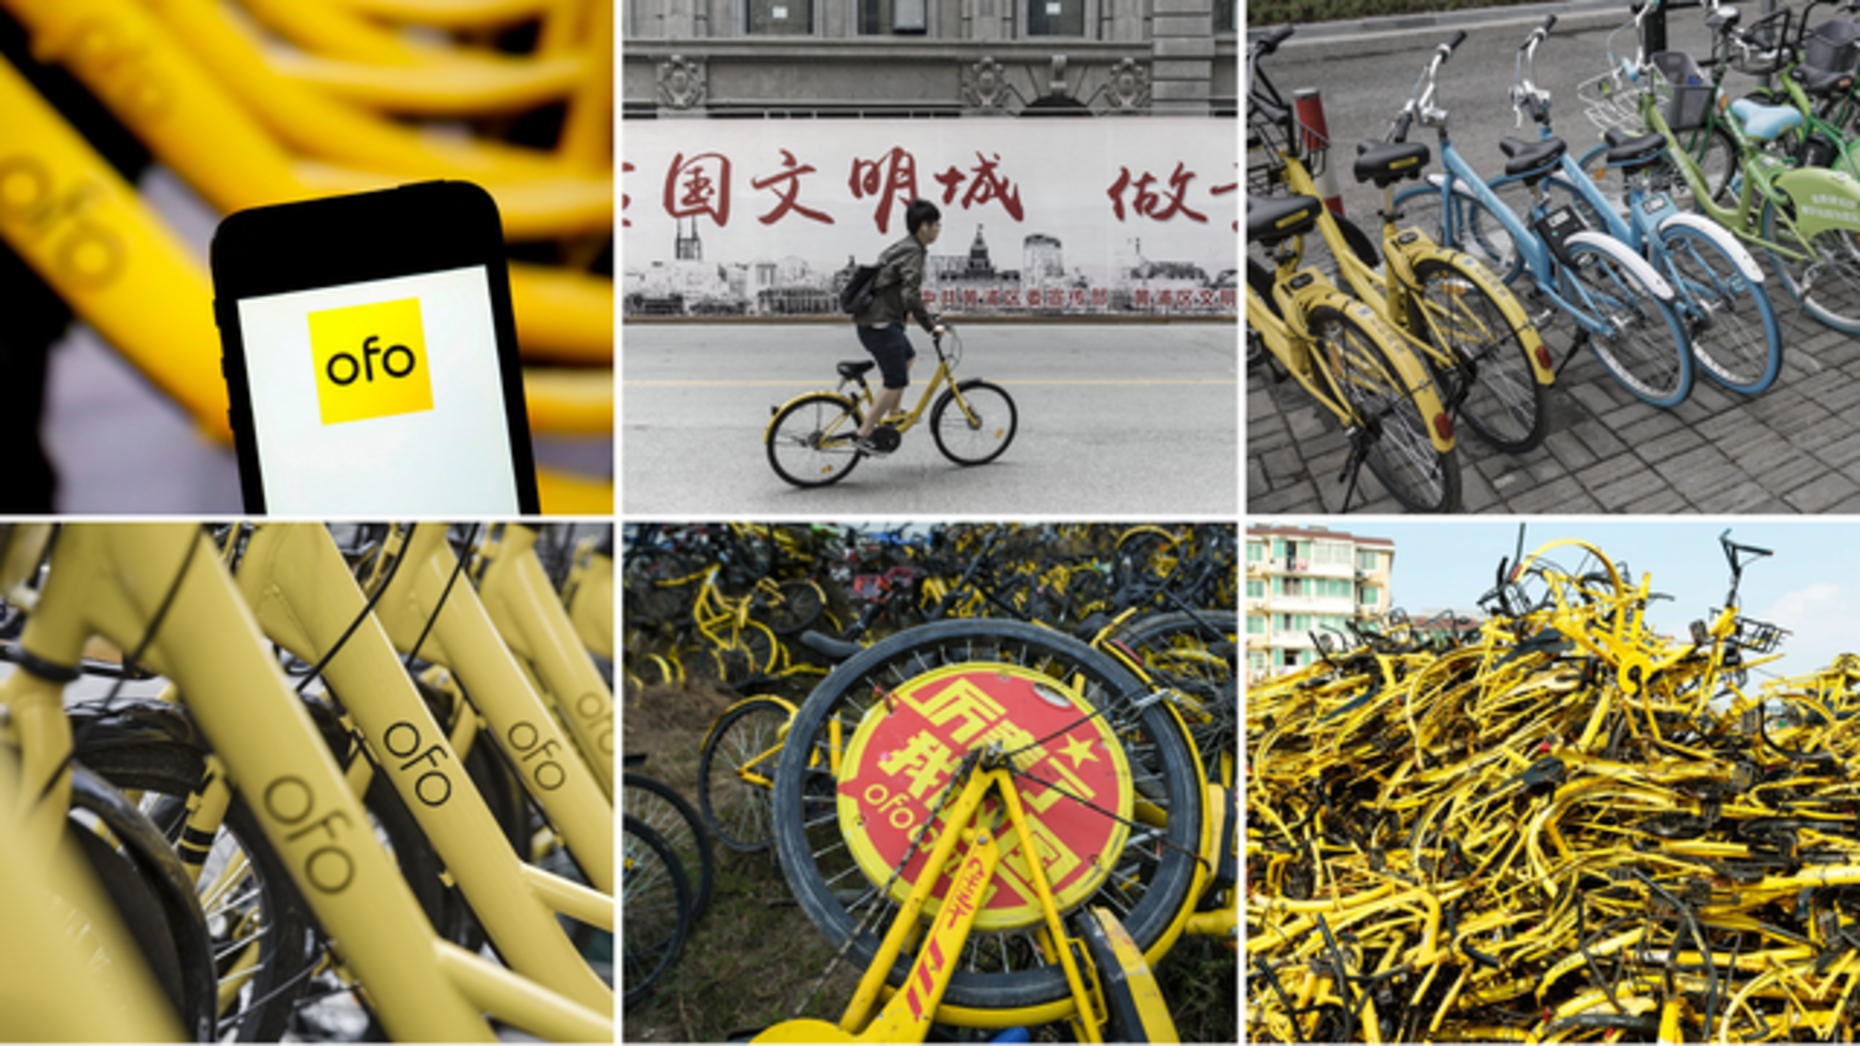 Photos by Bloomberg and AP